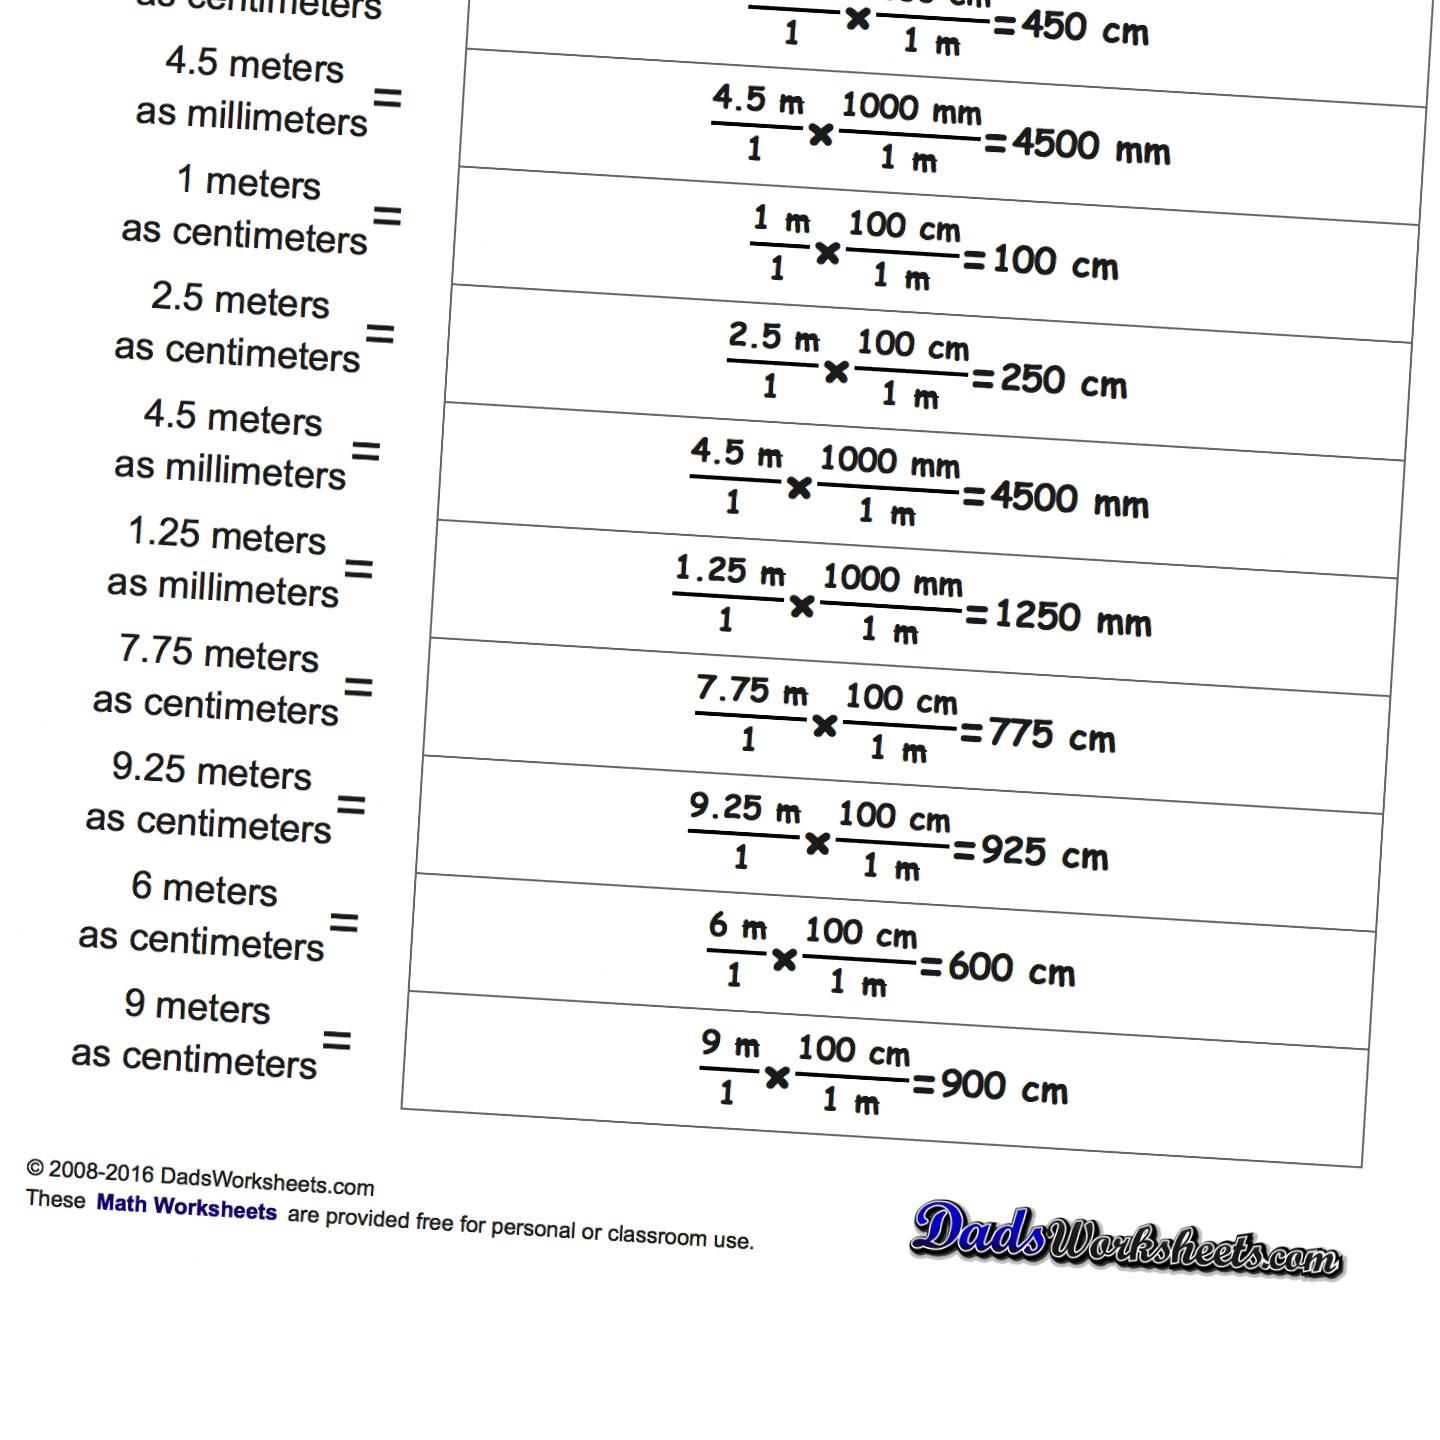 Worksheets Metric System Worksheets metric si unit conversions this page contains links to free math conversions